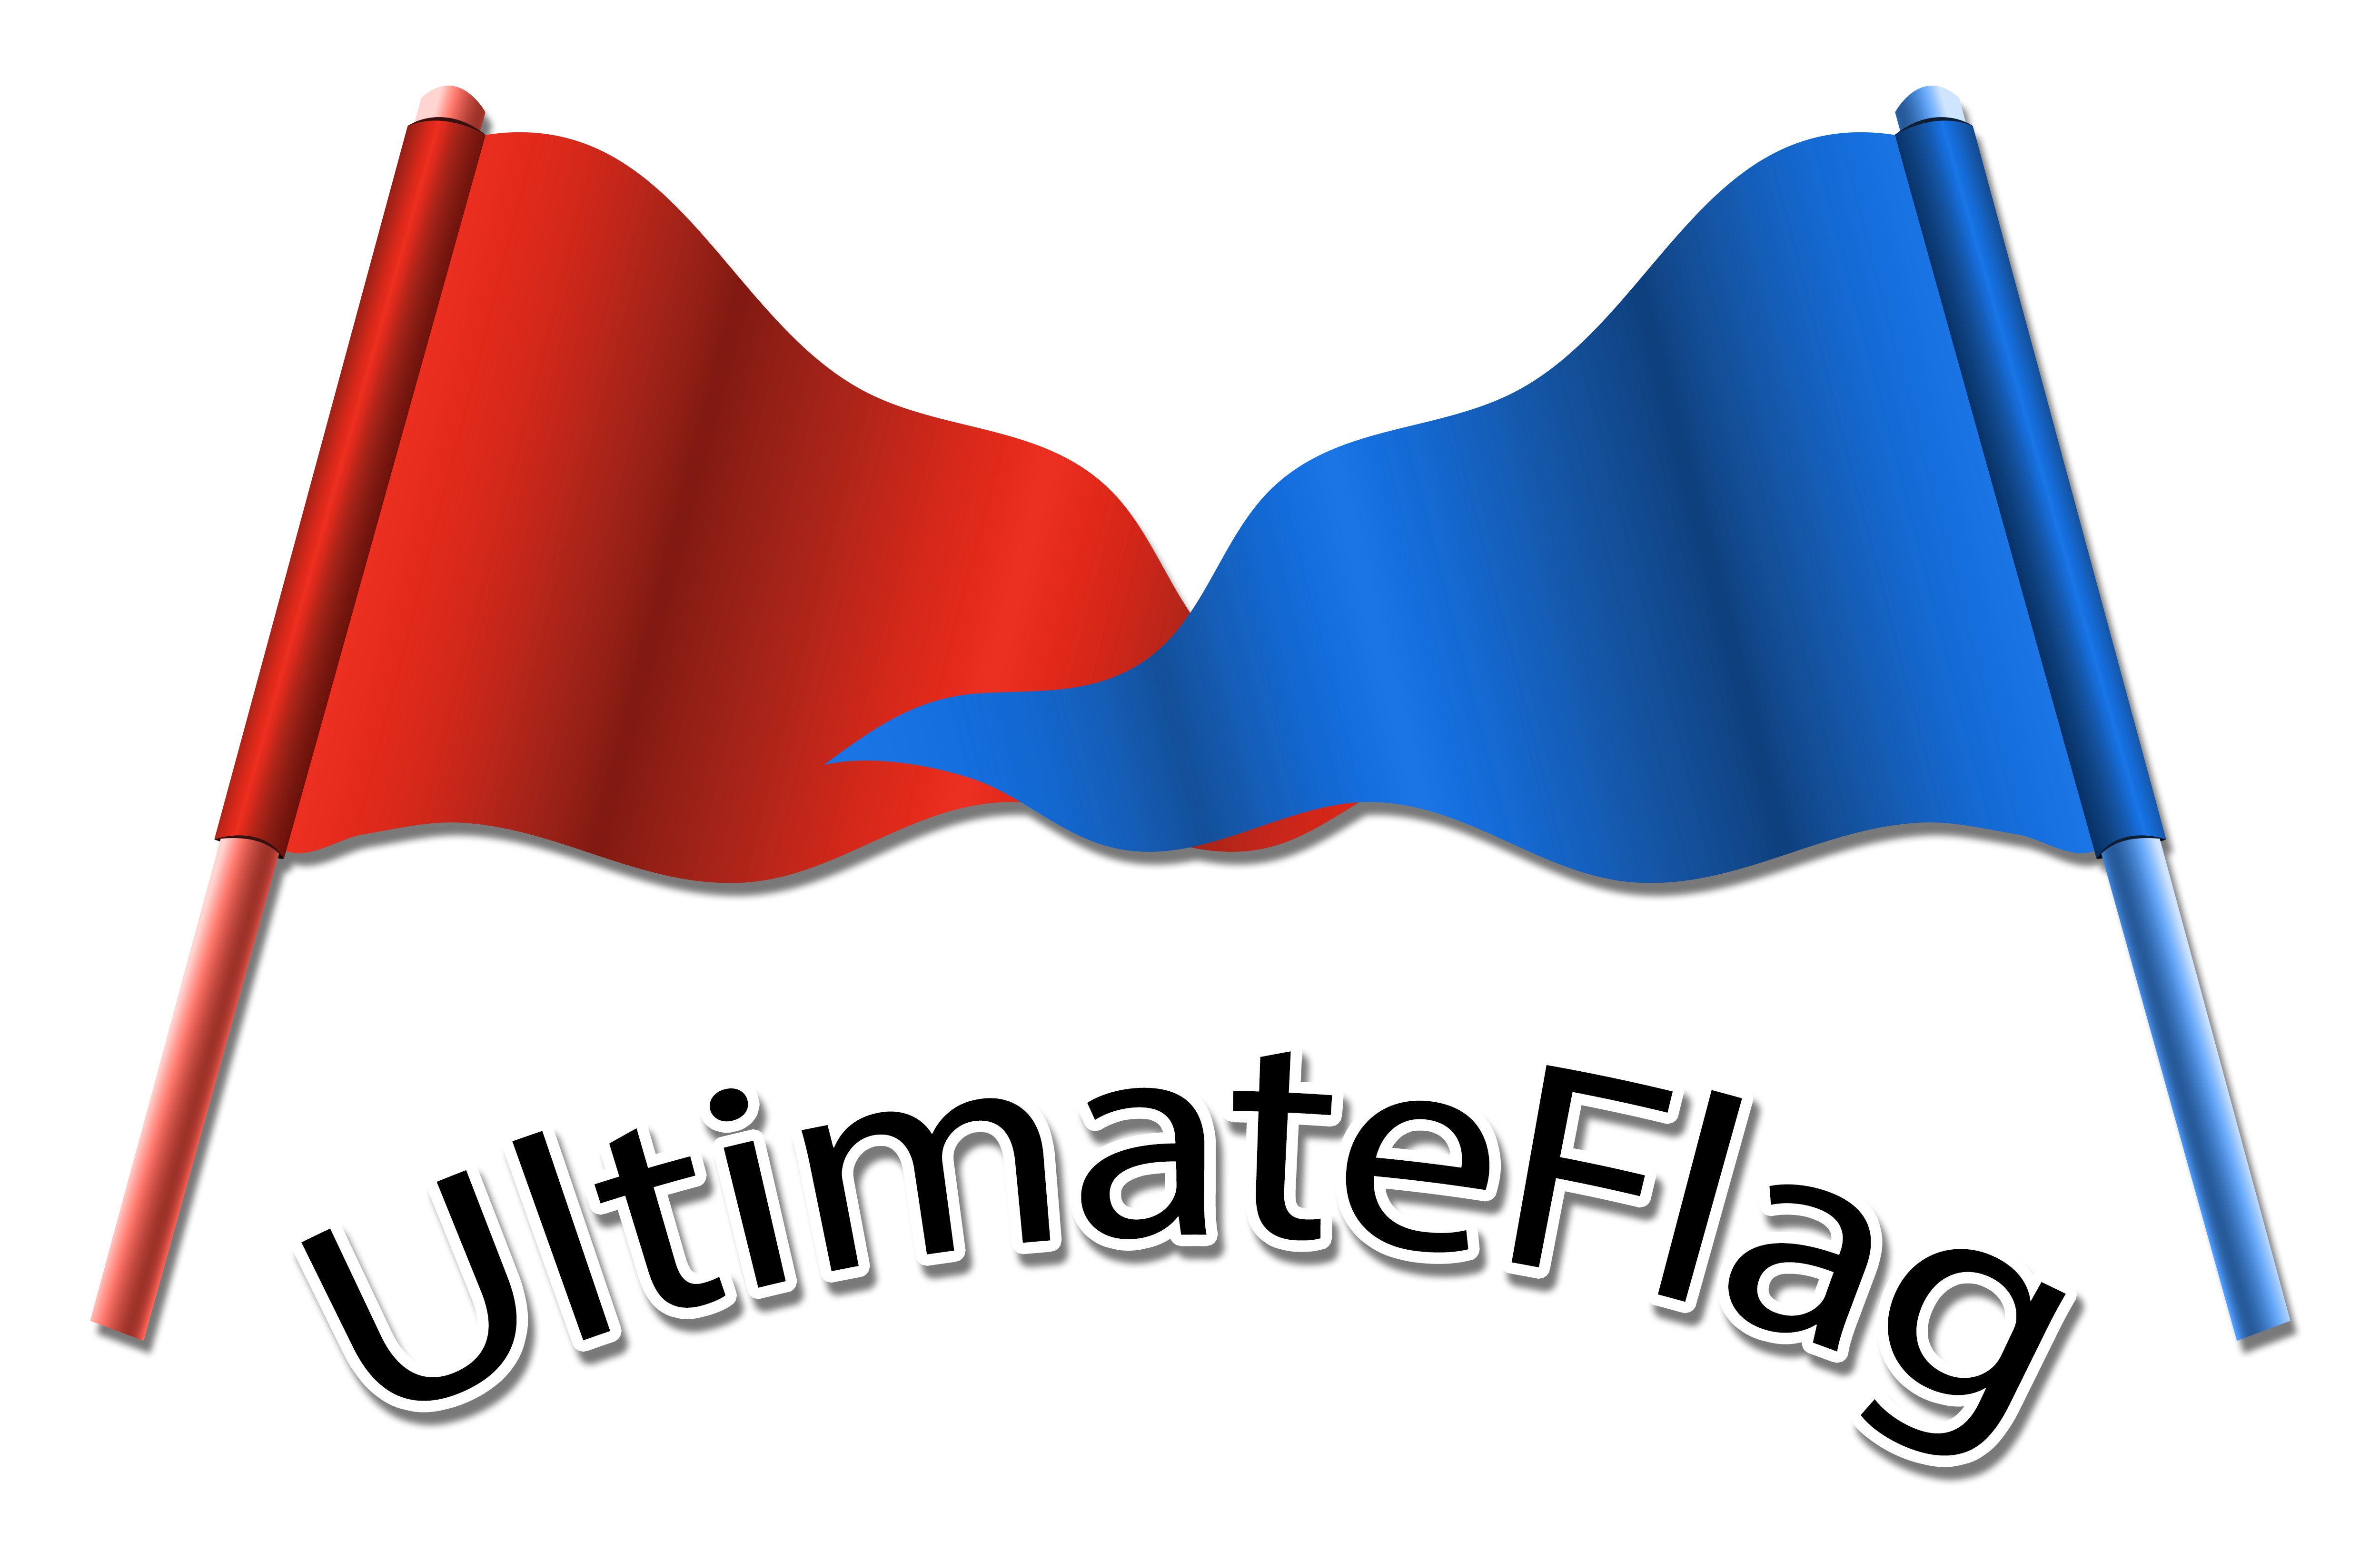 UltimateFlag